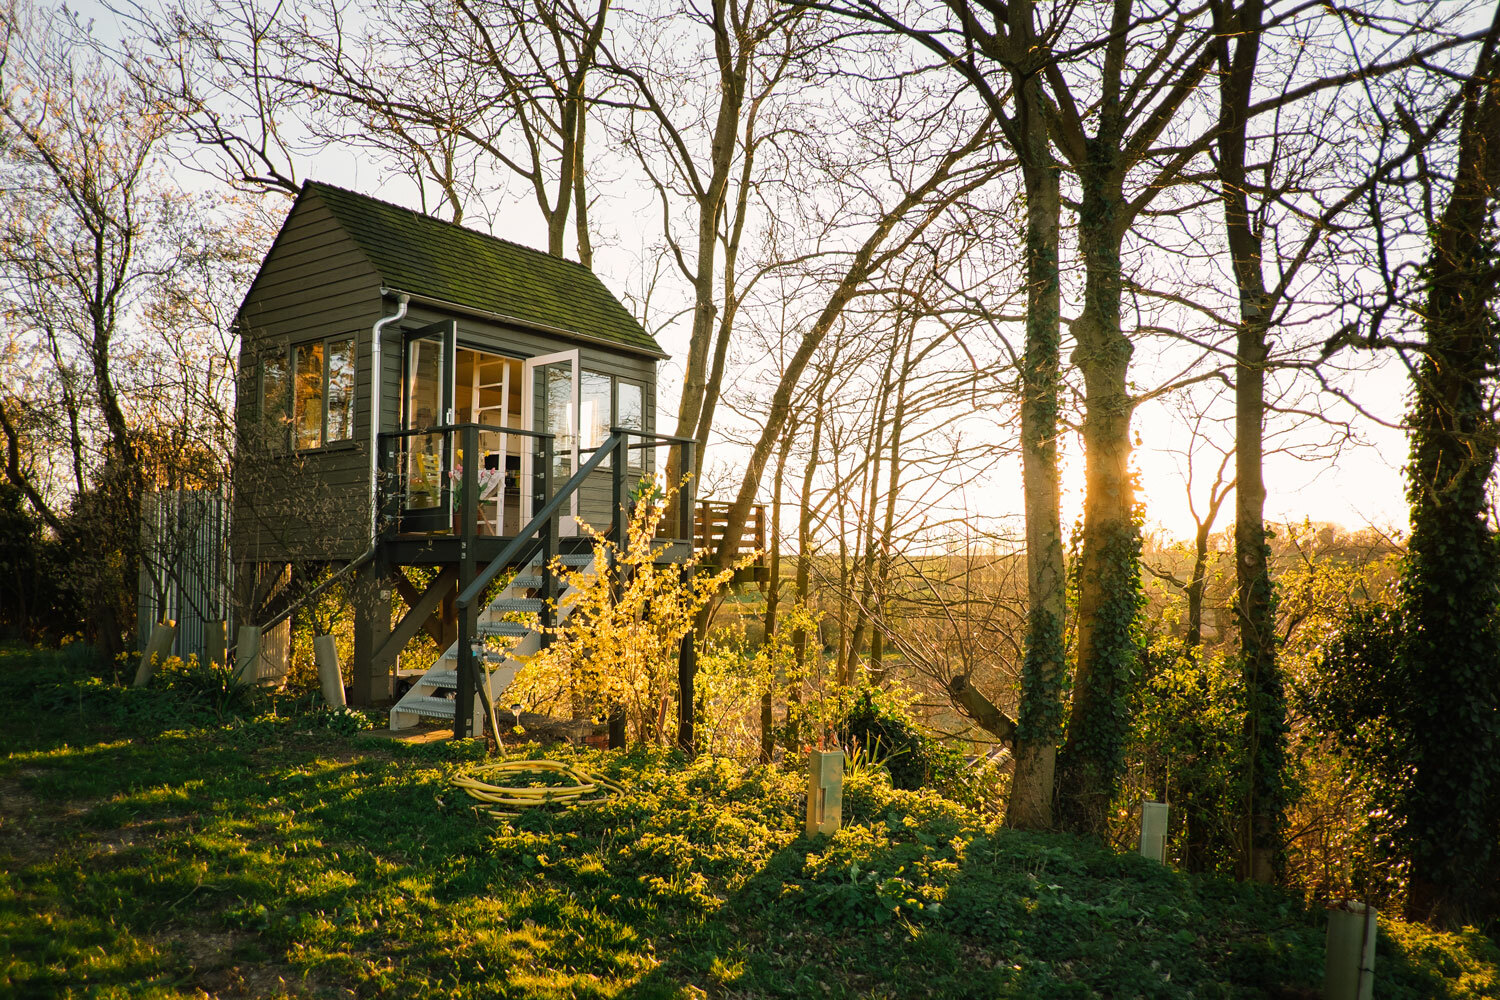 Ted's Hilltop Treehouse